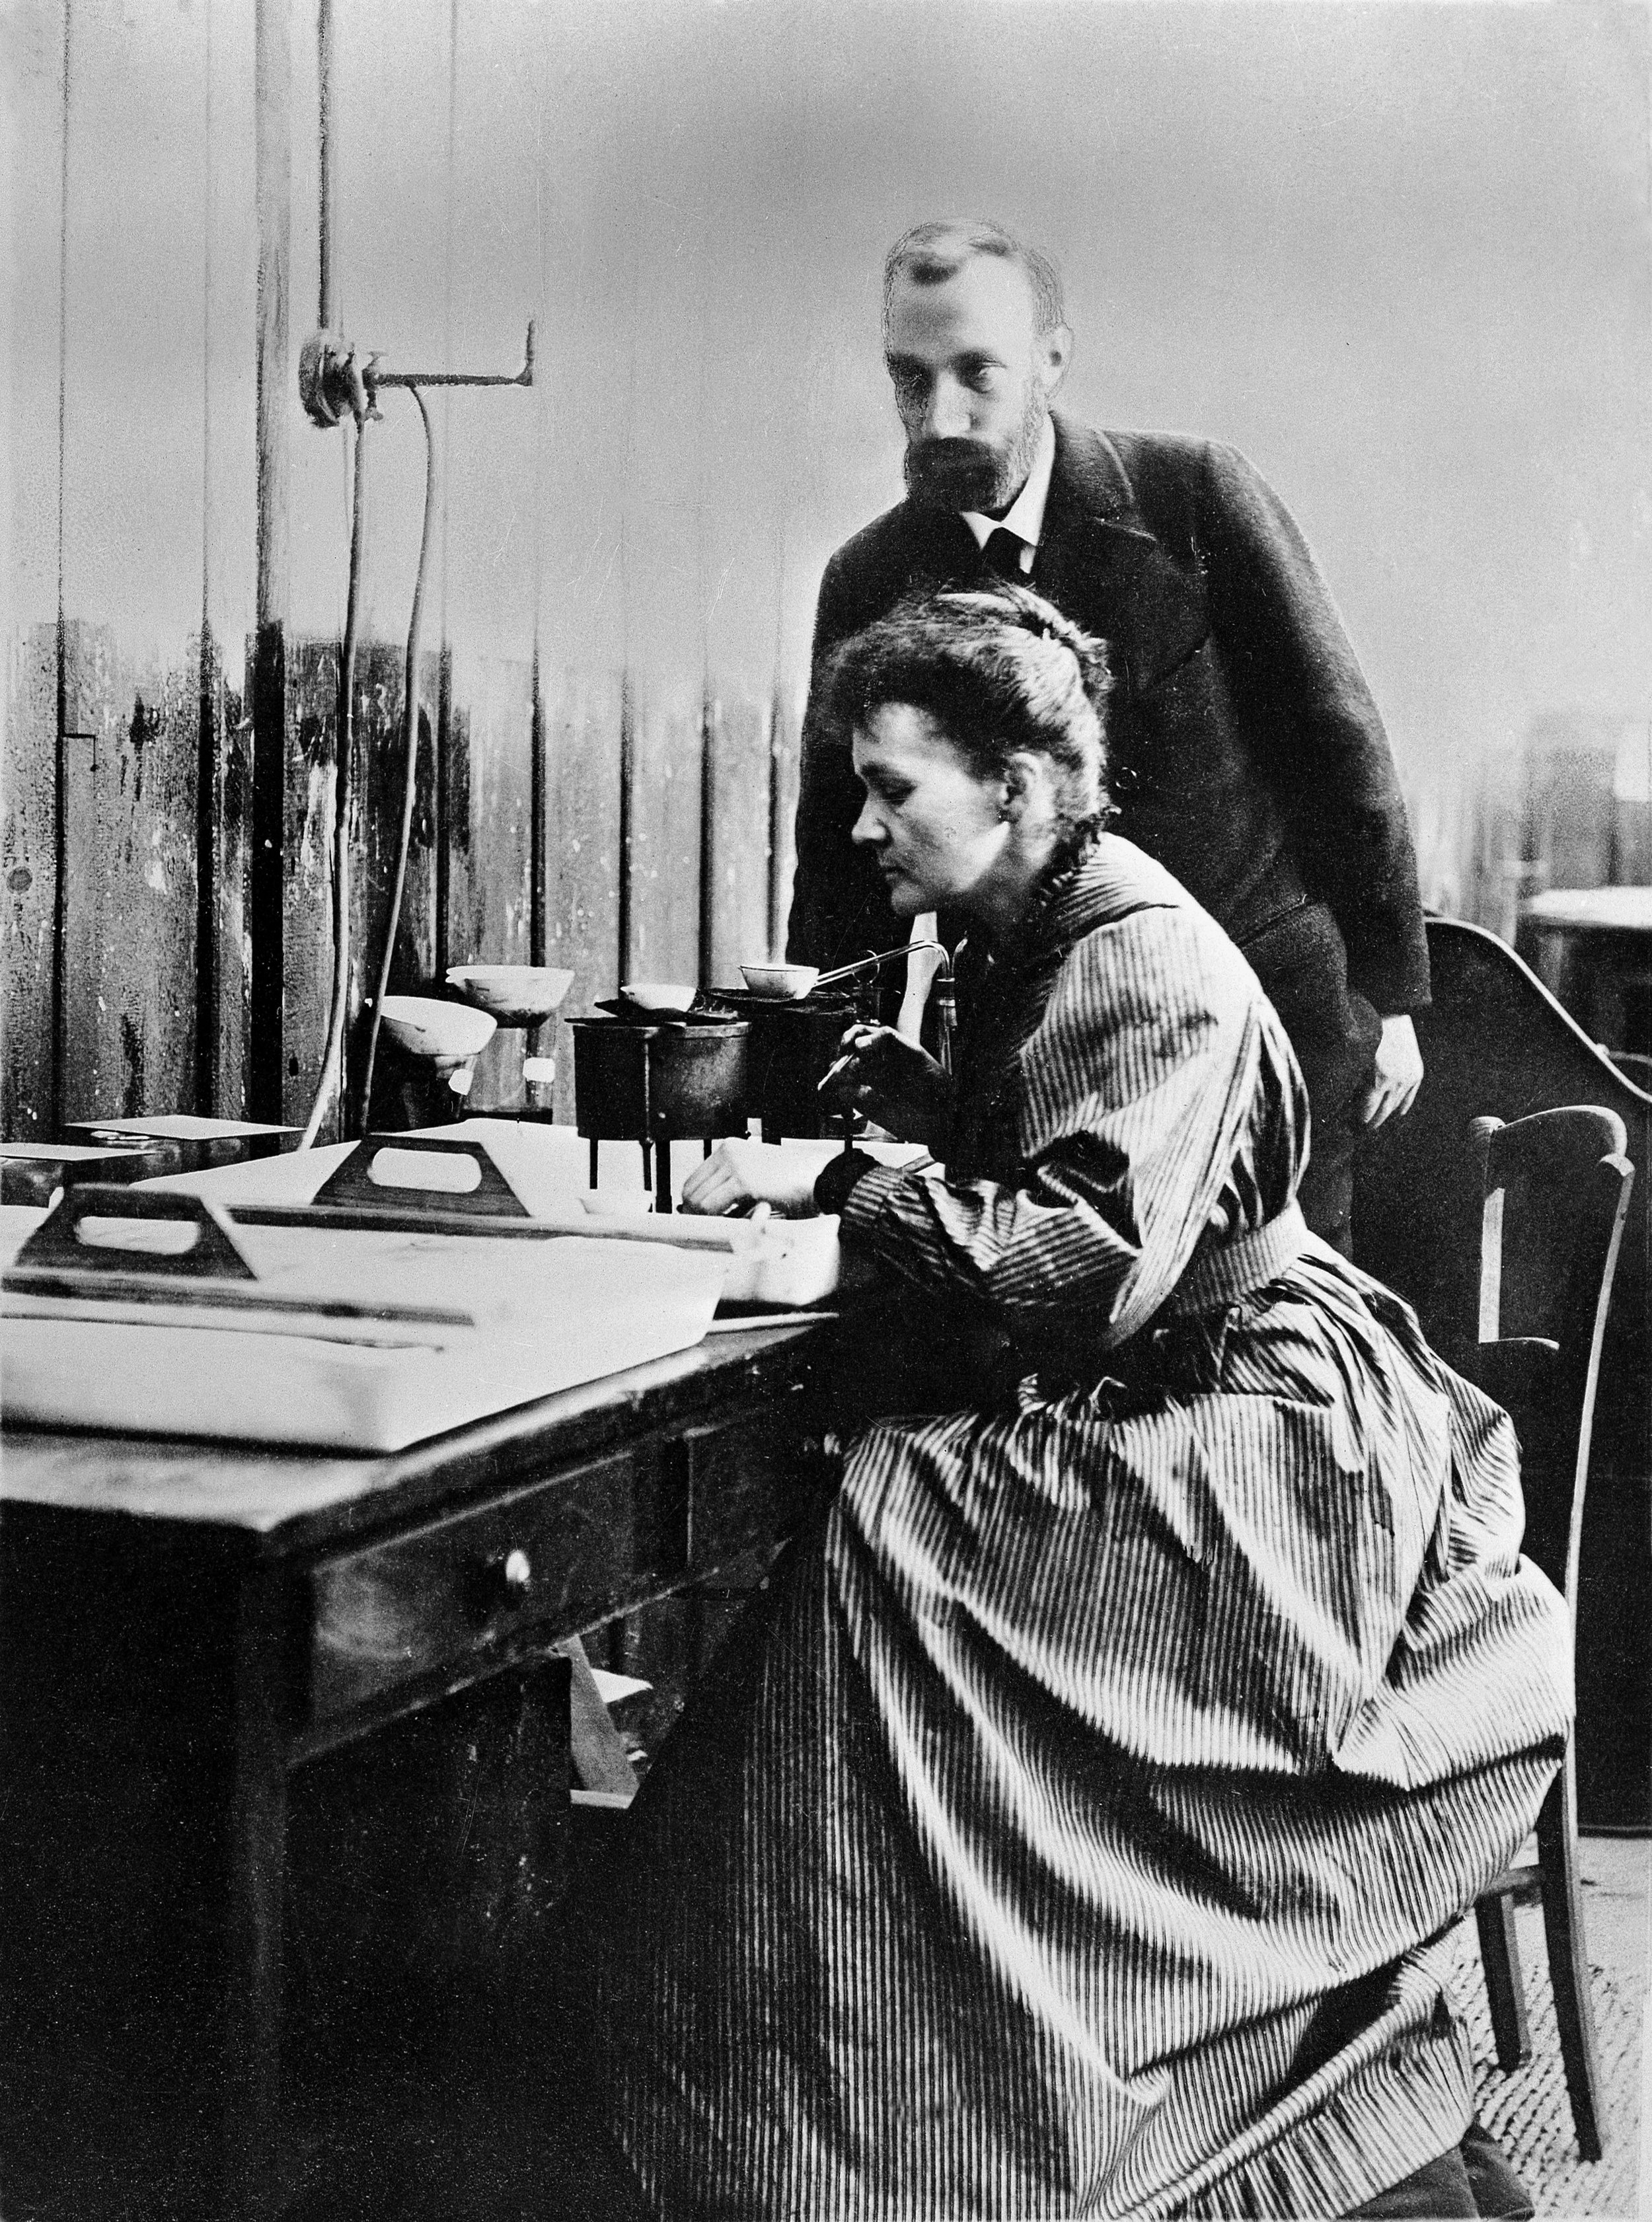 Pierre_and_Marie_Curie_at_work_in_laboratory_Wellcome_L0001761.jpg